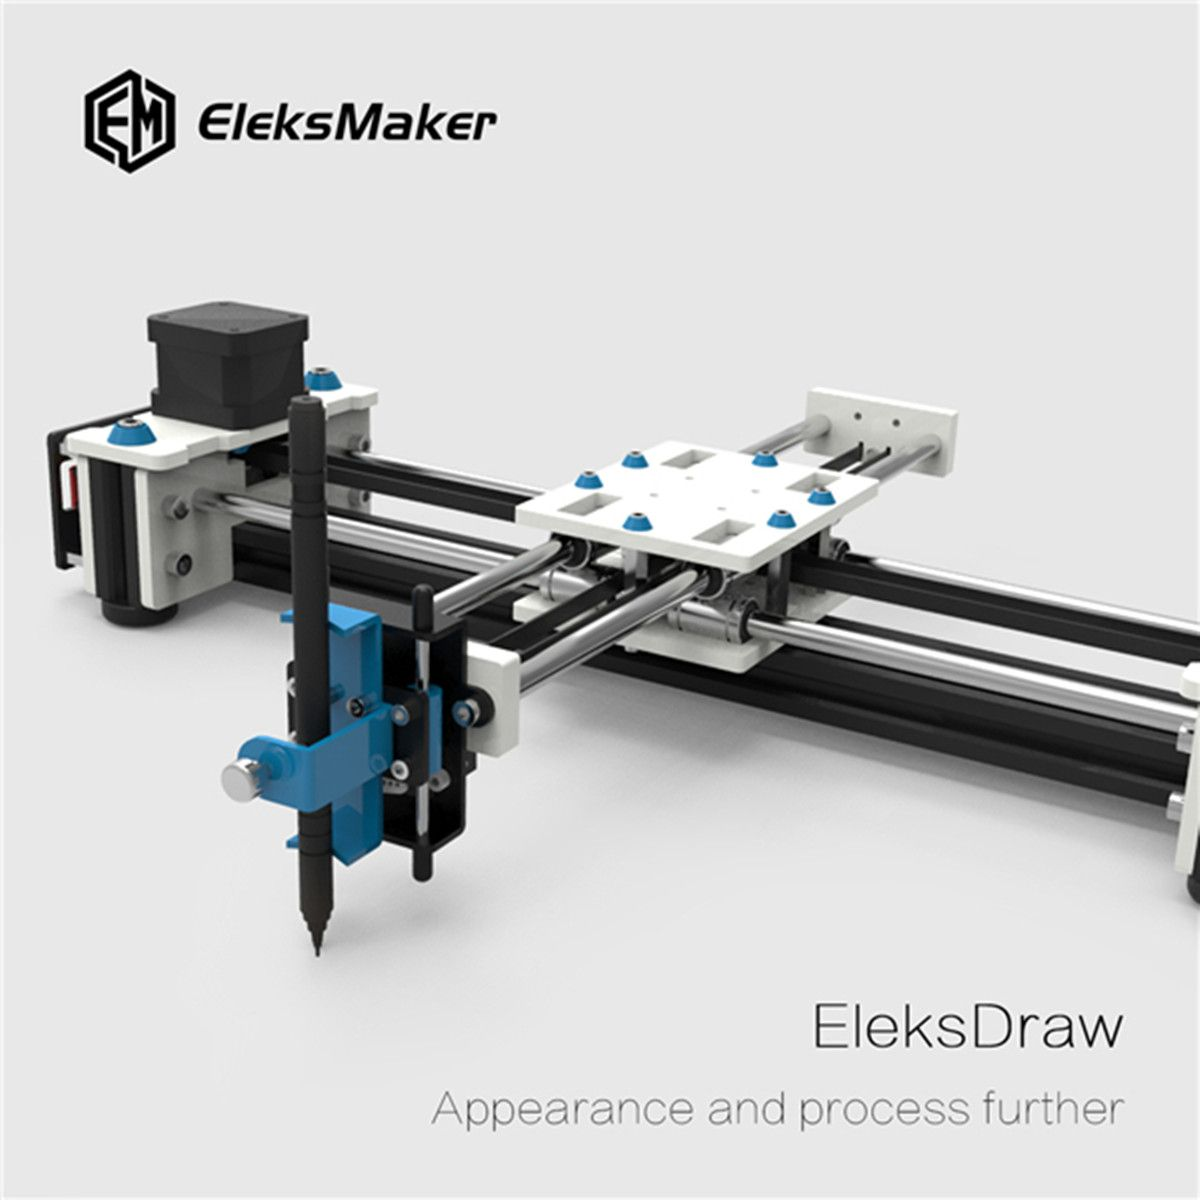 EleksMaker EleksDraw Mini XY 2 Axis CNC Plotter Pen USB DIY Laser Drawing Machine Engraving Area 280x200mm Desktop Drawing Robot